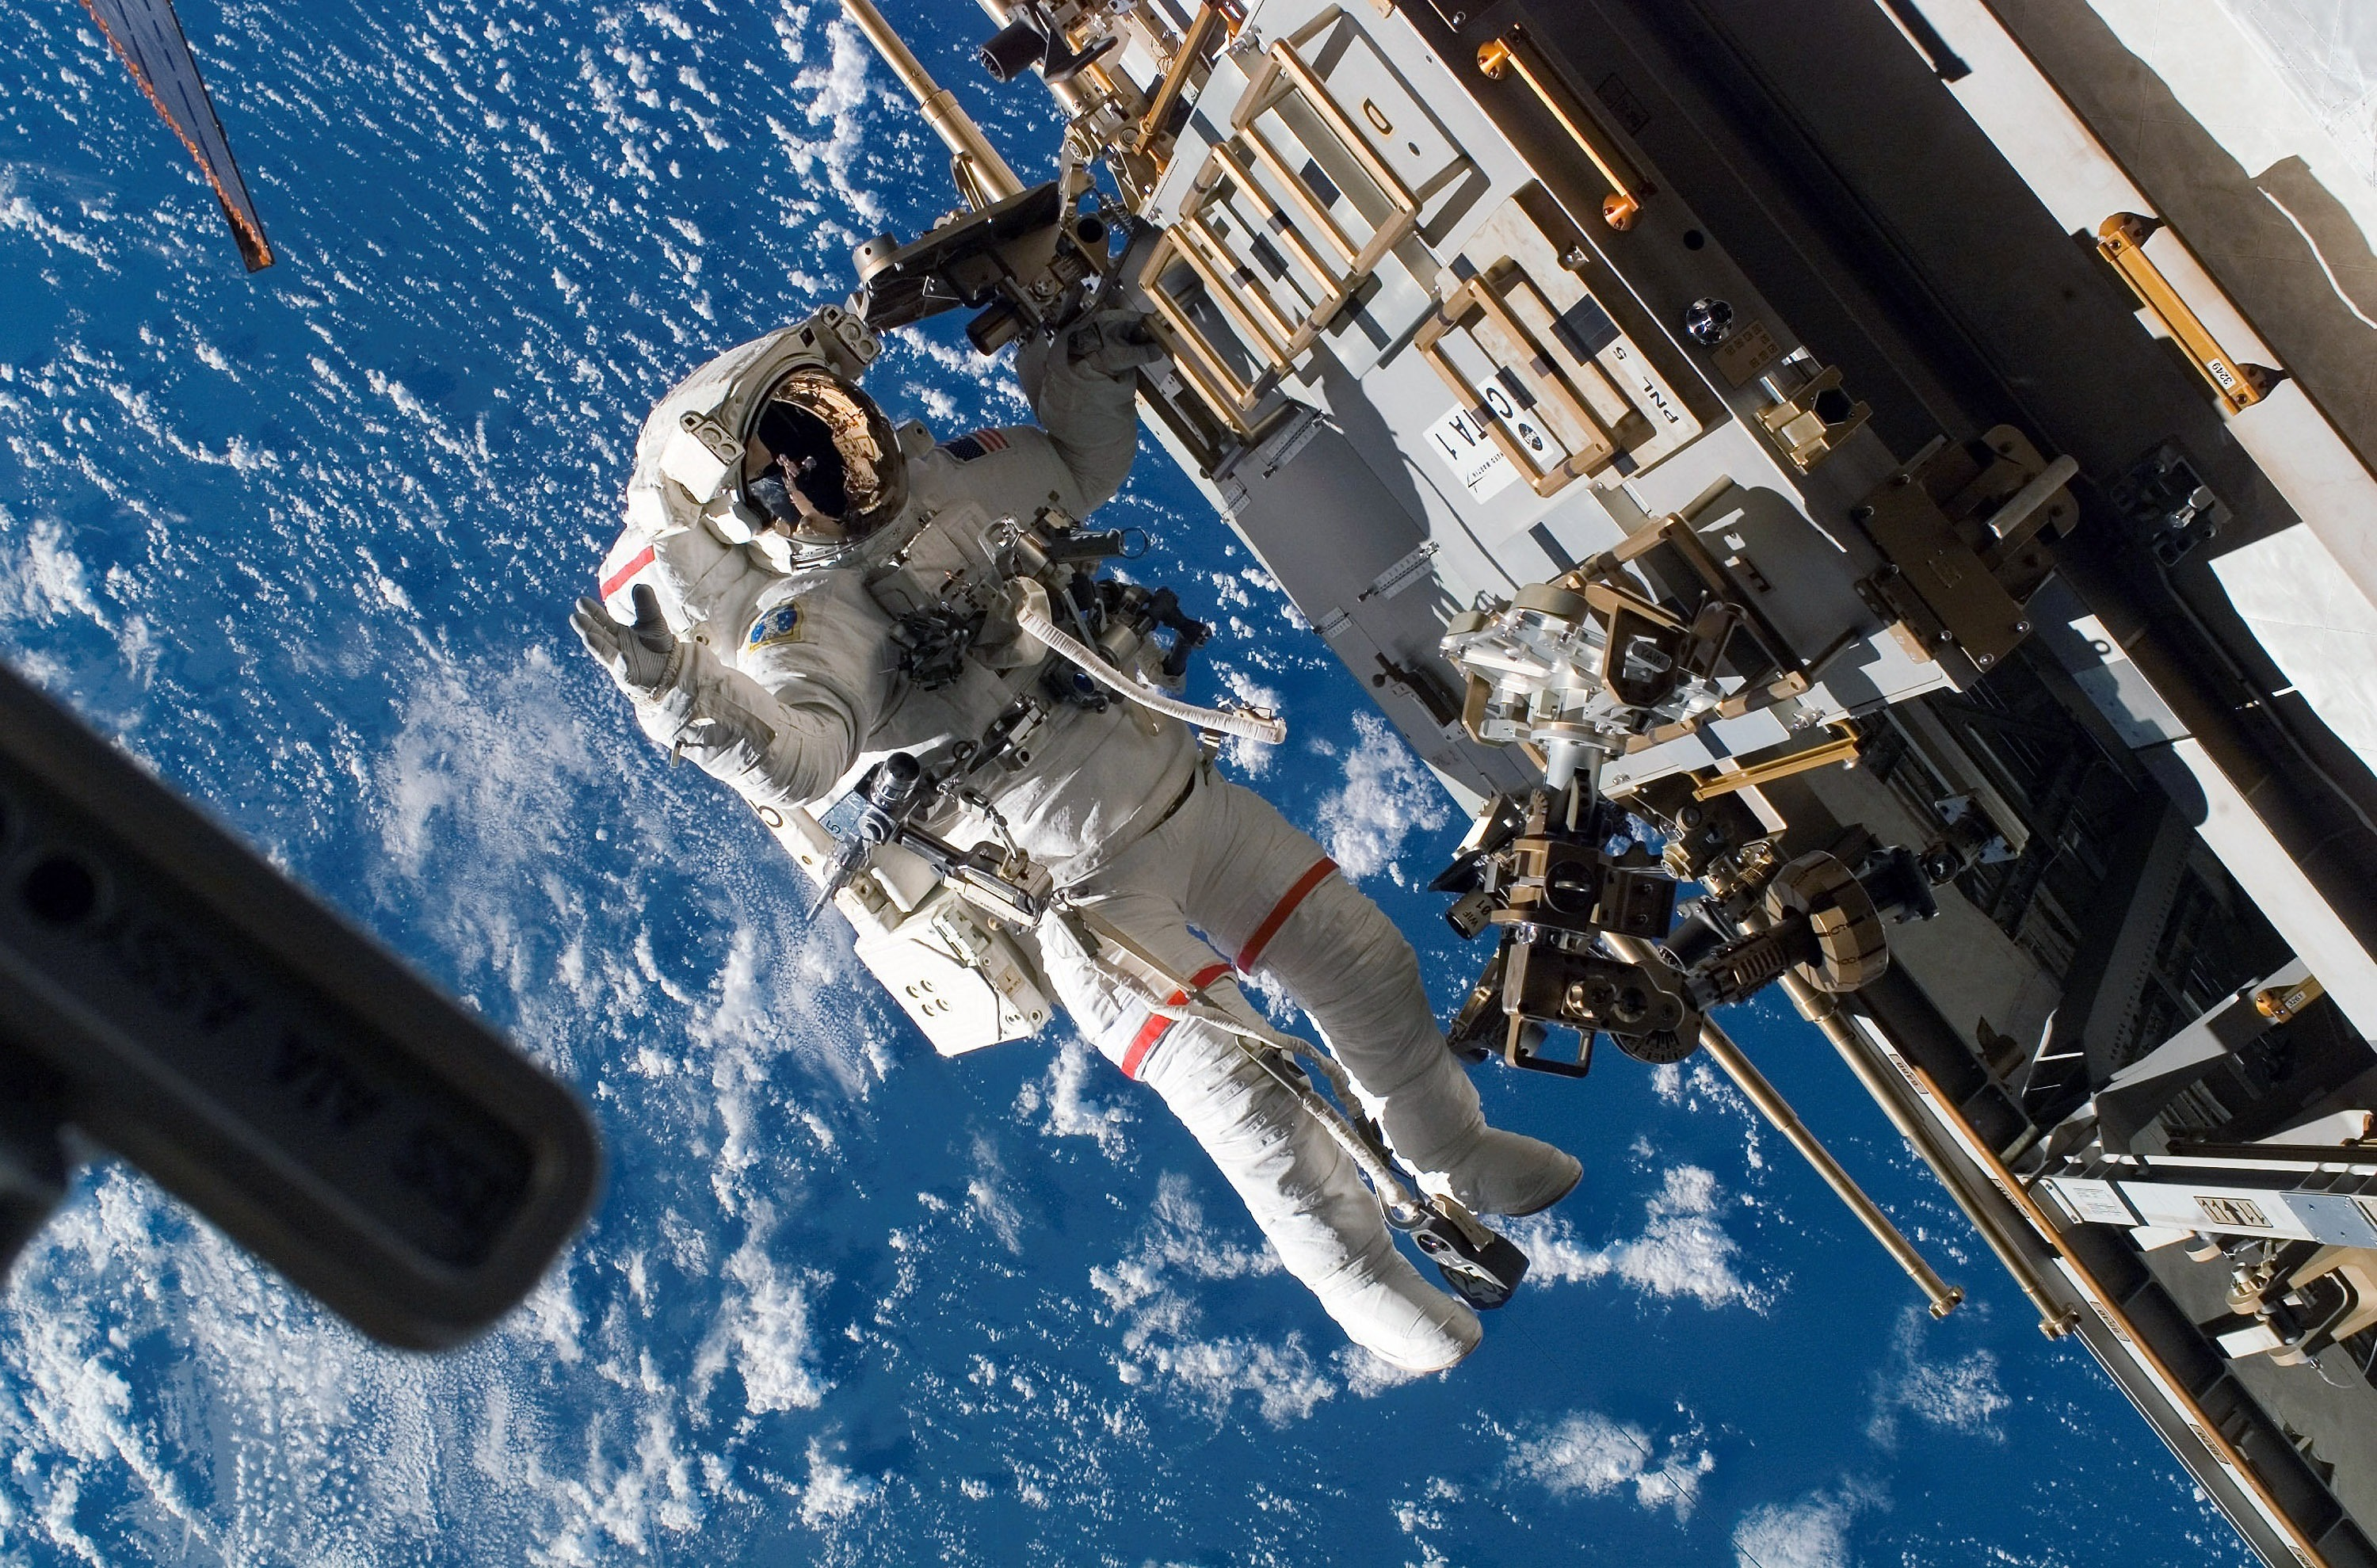 In this handout photo provided by NASA, Astronaut Rick Mastracchio, STS-118 mission specialist, participates in the mission's third planned session of extravehicular activity (EVA) as construction and maintenance continue on the International Space Station August 15, 2007 in Space.